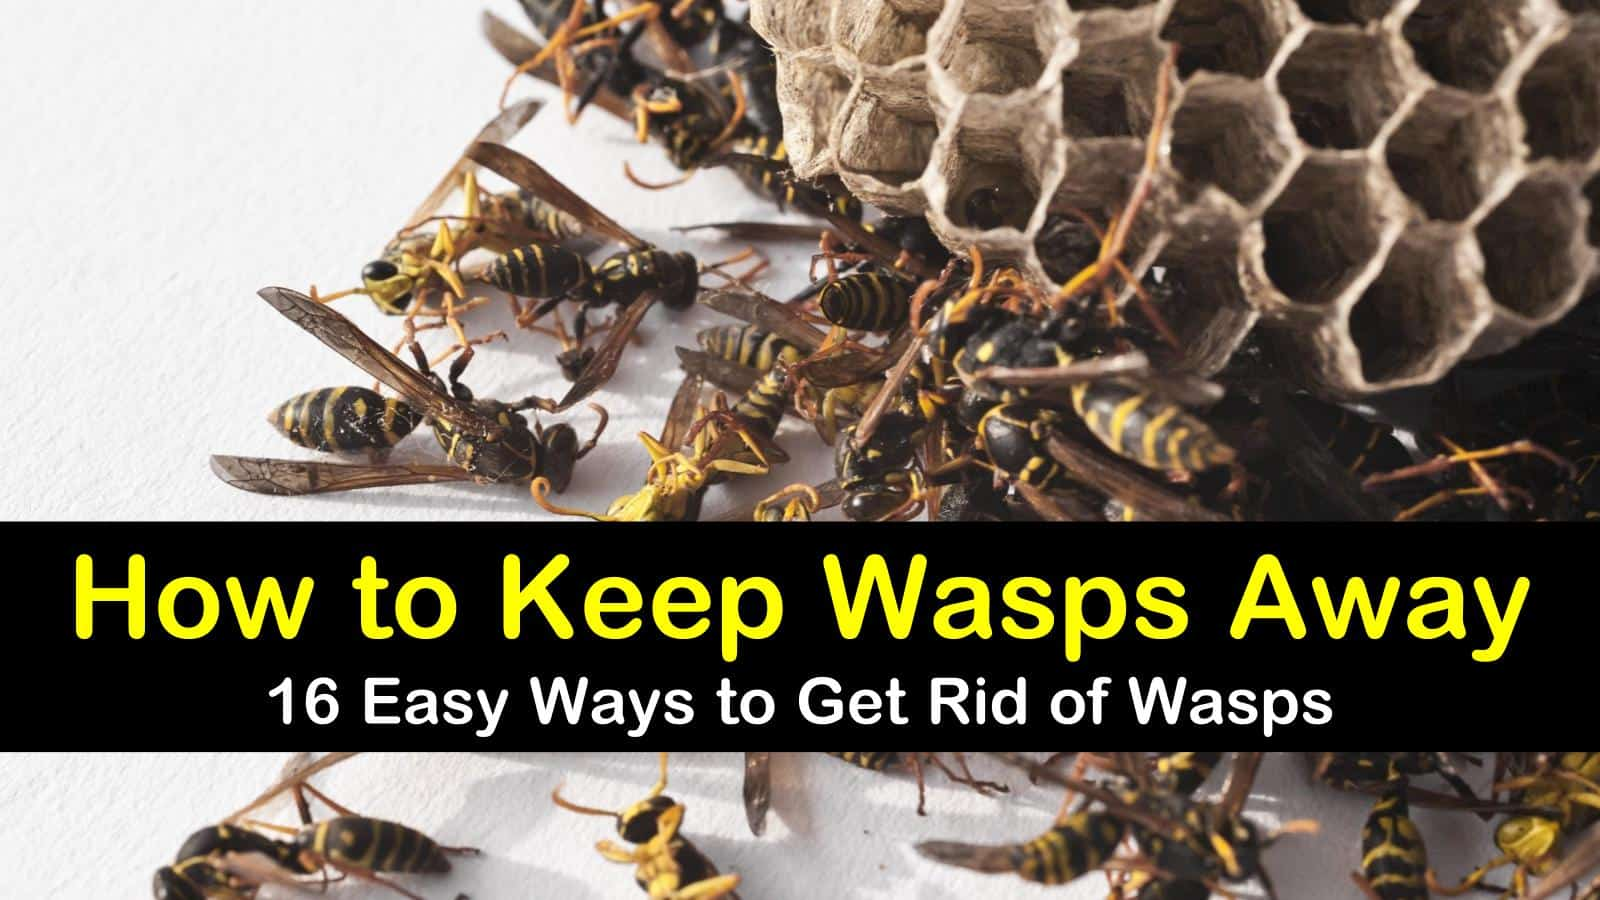 how to keep wasps away titlimg